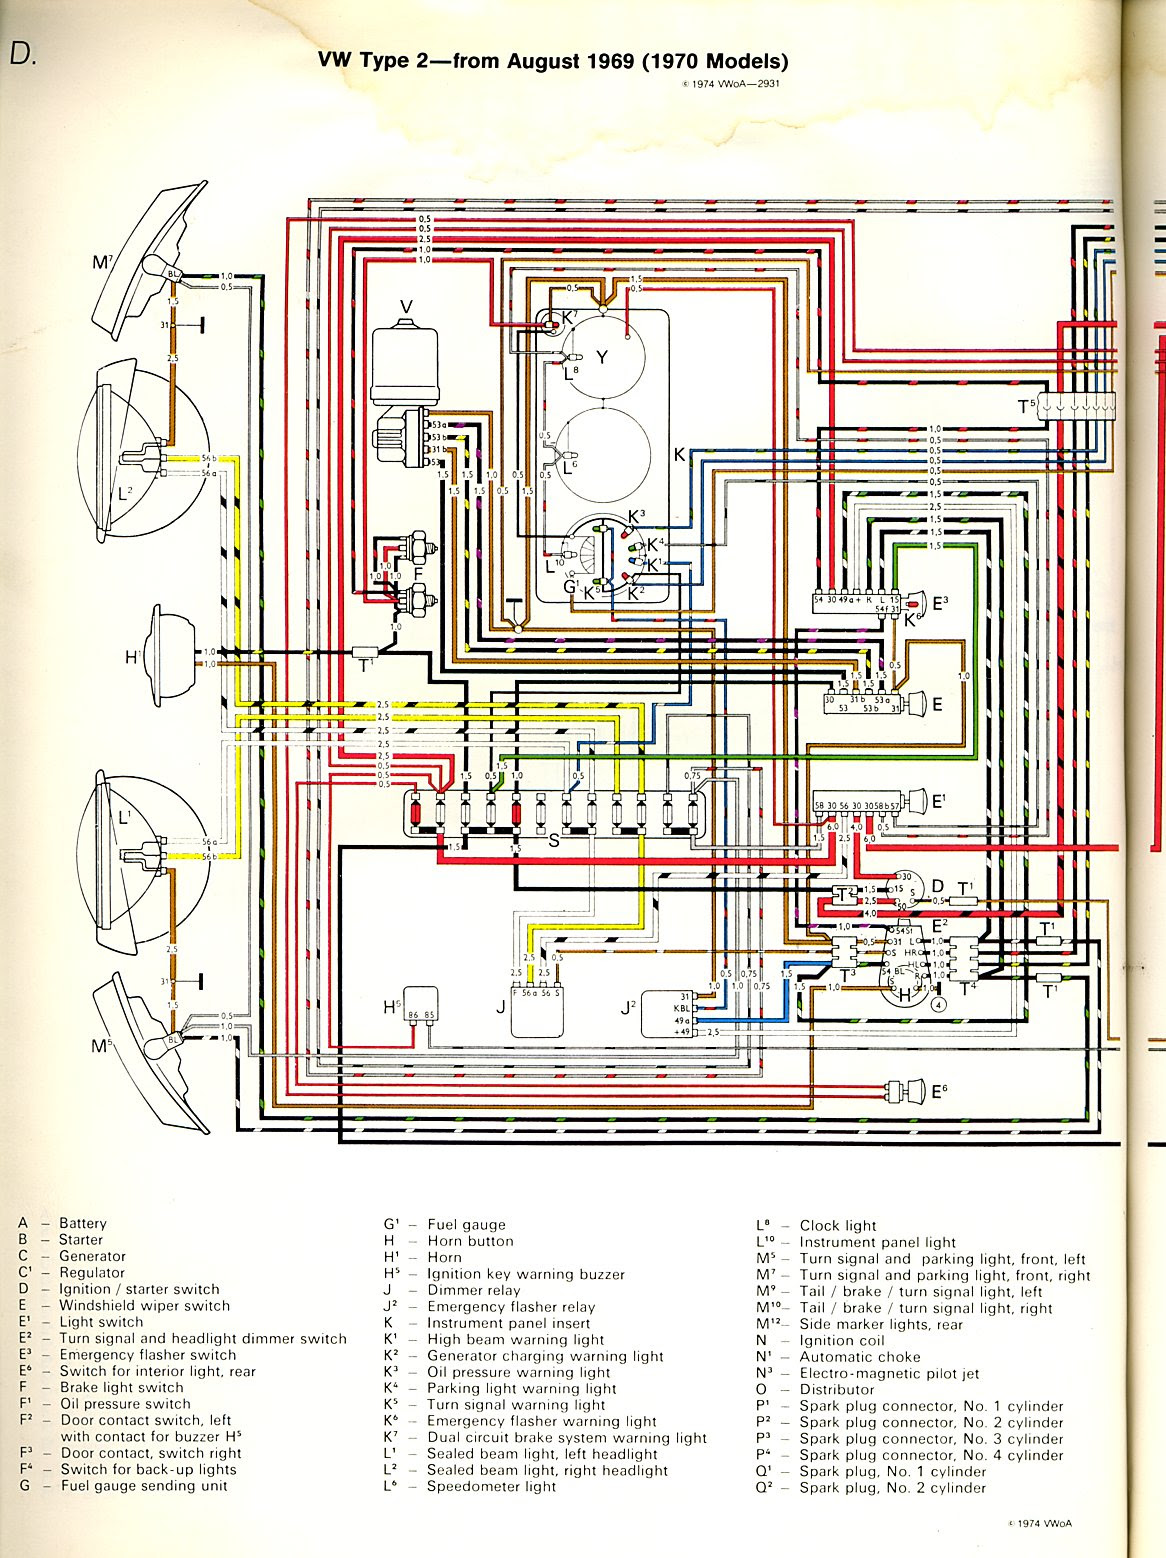 Diagram In Pictures Database 69 Beetle Engine Wiring Harness Diagrams Just Download Or Read Harness Diagrams Nodemcu Schematic Pdf Onyxum Com